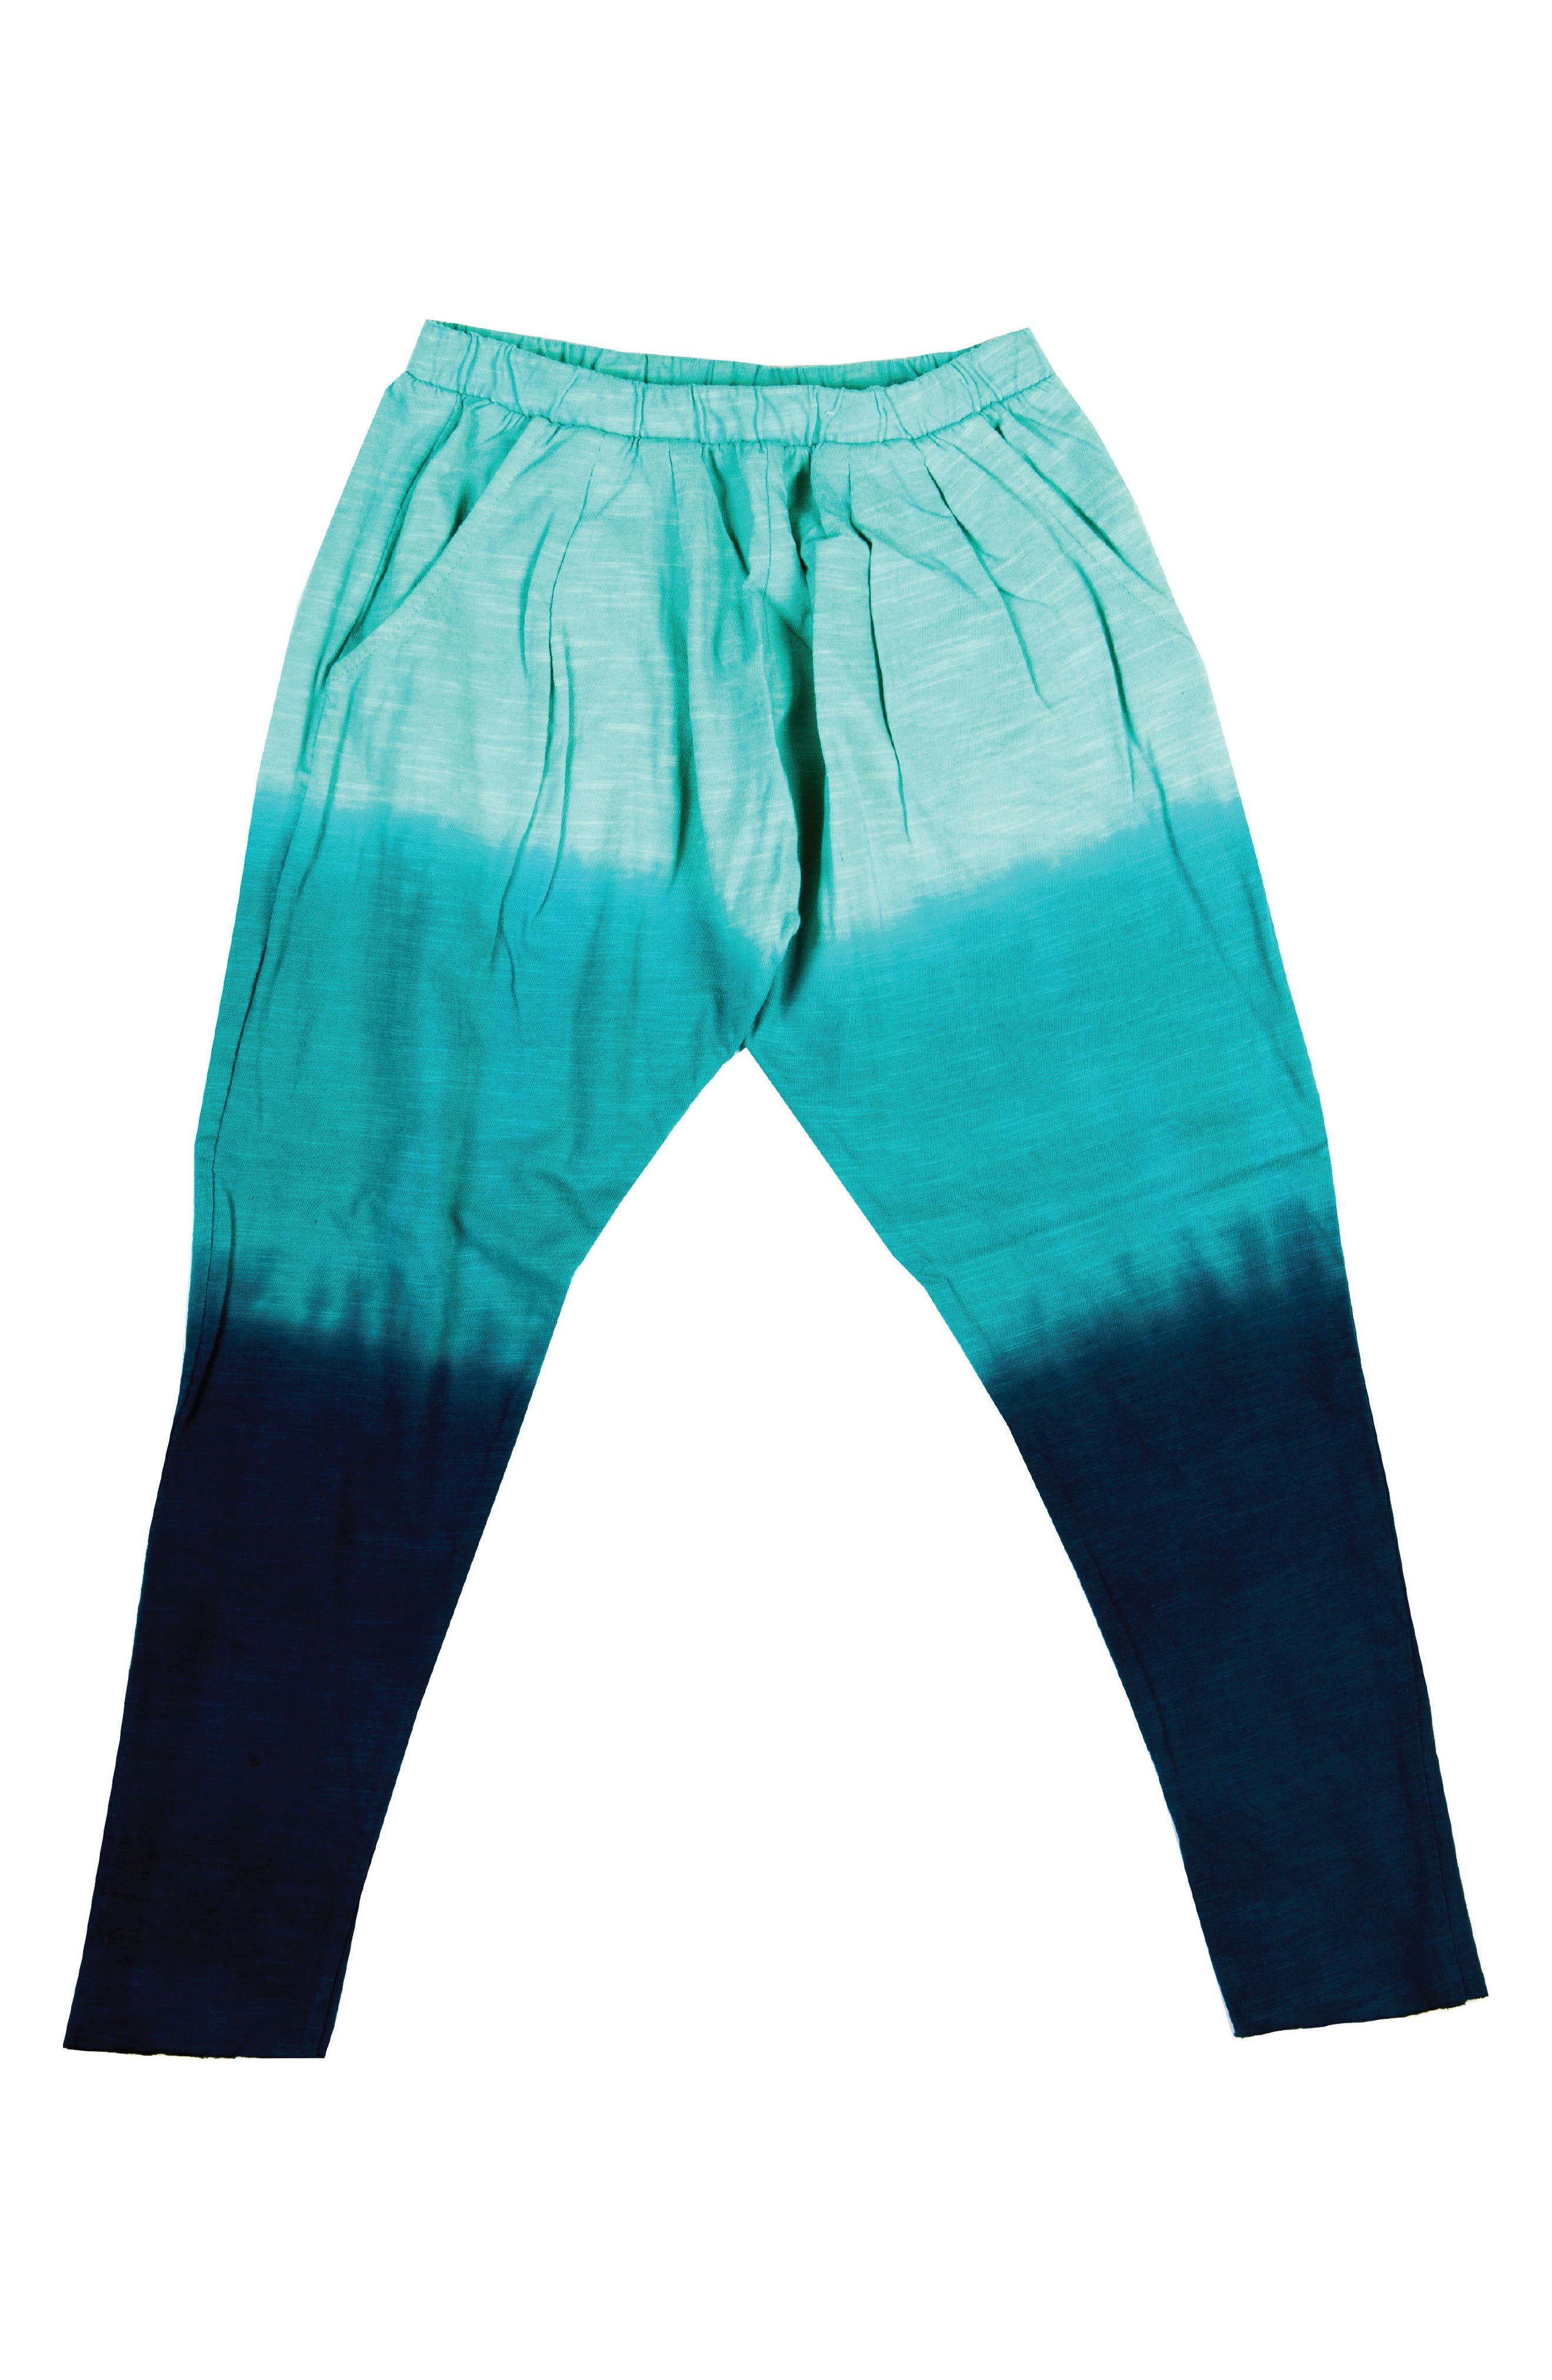 Dip Dye Harem Pants,                         Main,                         color, Aqua